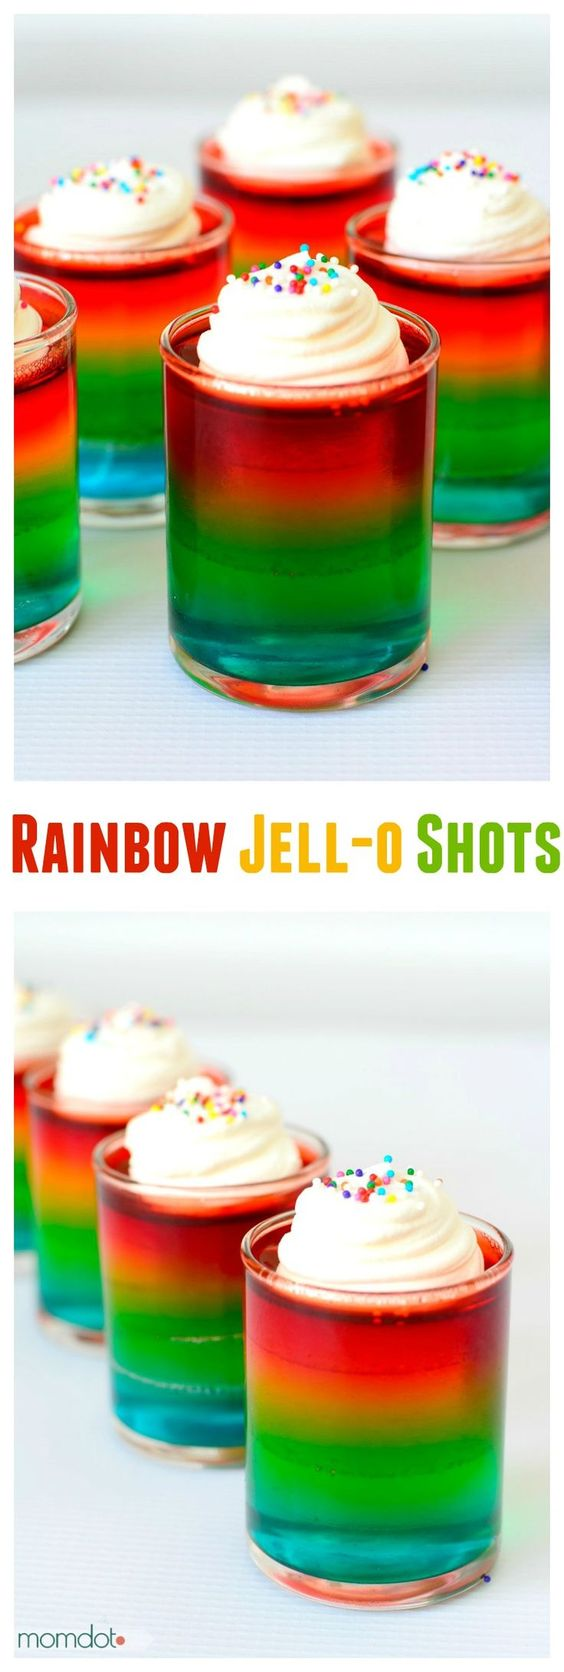 how to make rainbow jello shots : Rainbow Jello Shots : How to make a stunning adult rainbow shot to impress at your next party- why do kids have to have all the fun?